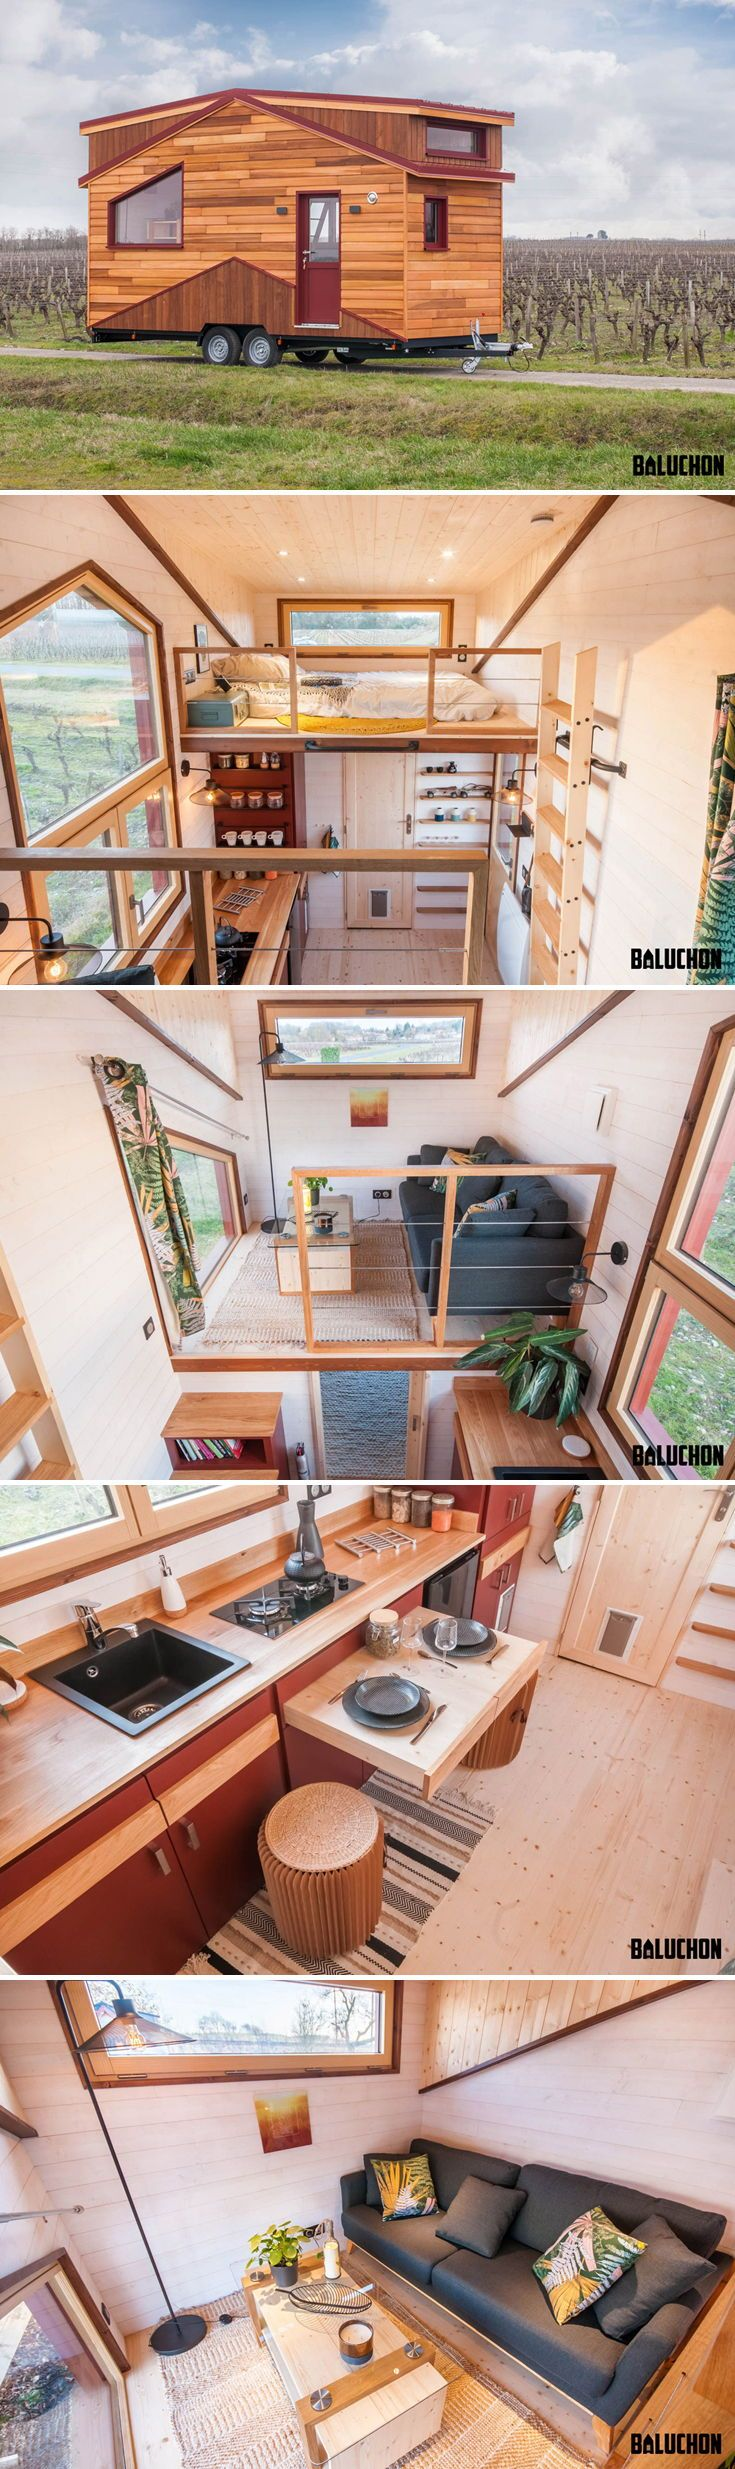 Treasure Island by Baluchon #tinyhome